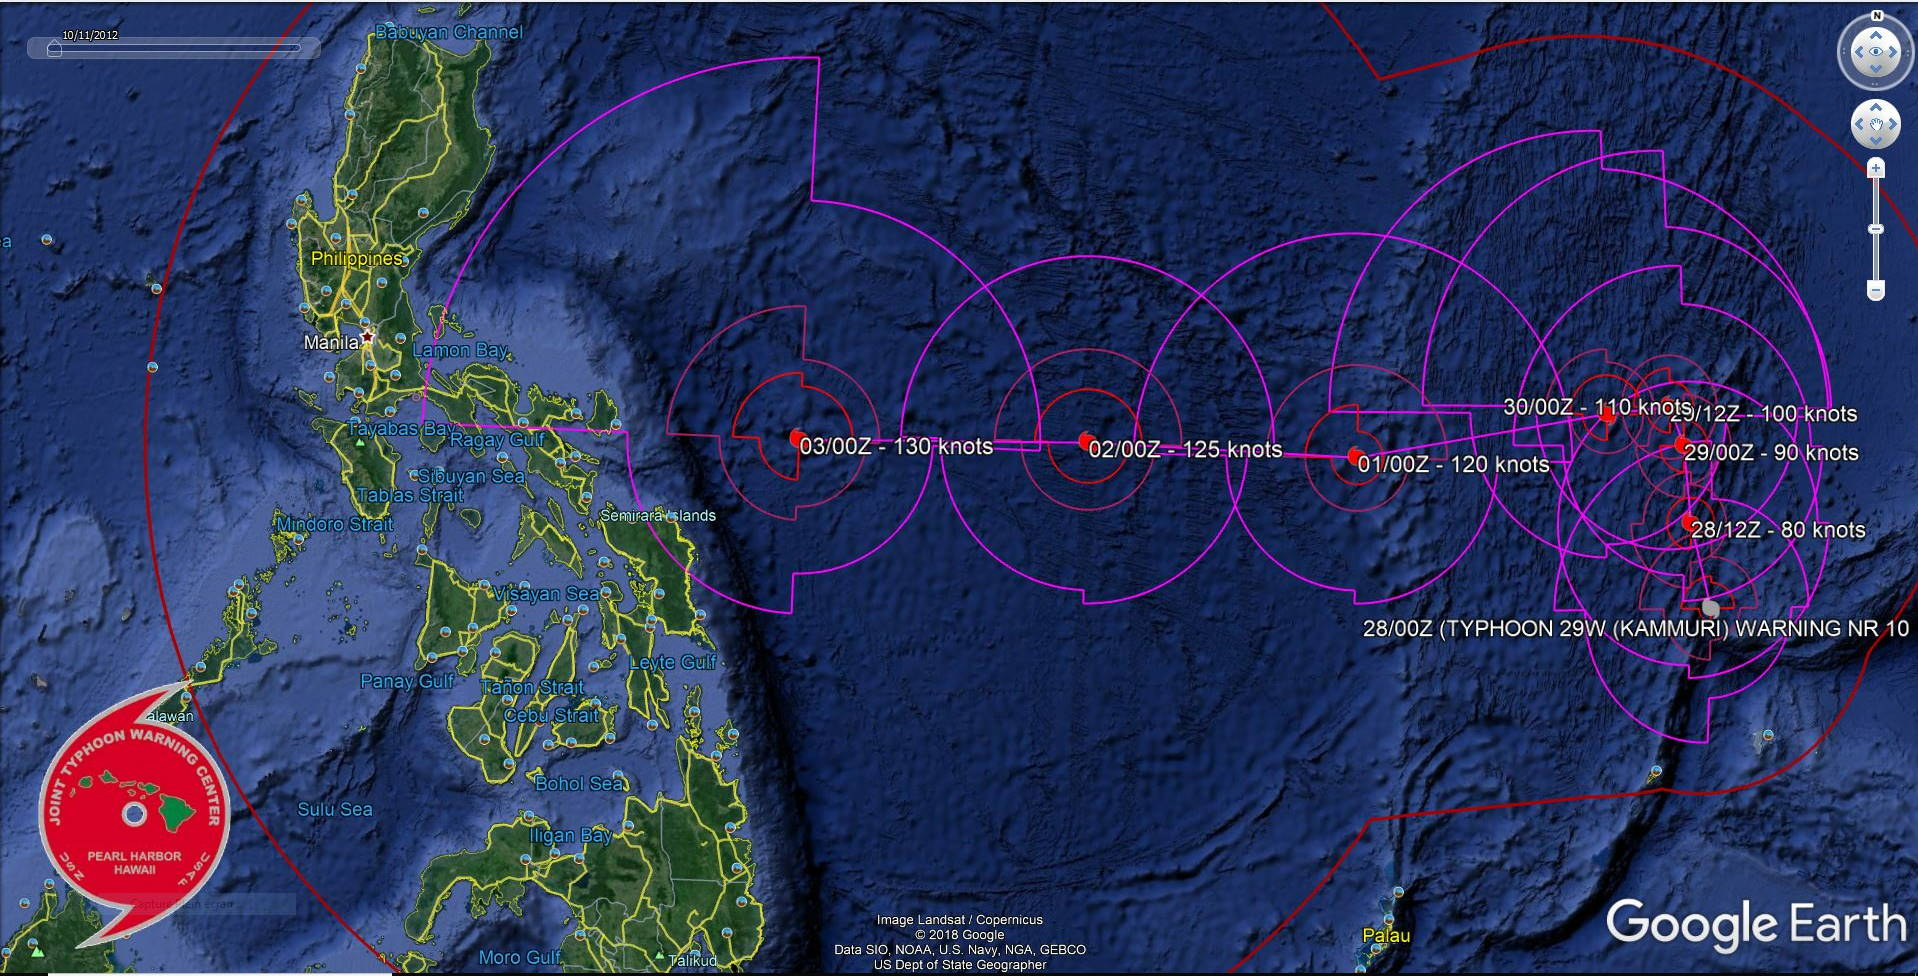 FORECAST TO BE A SUPER TYPHOON IN 5 DAYS